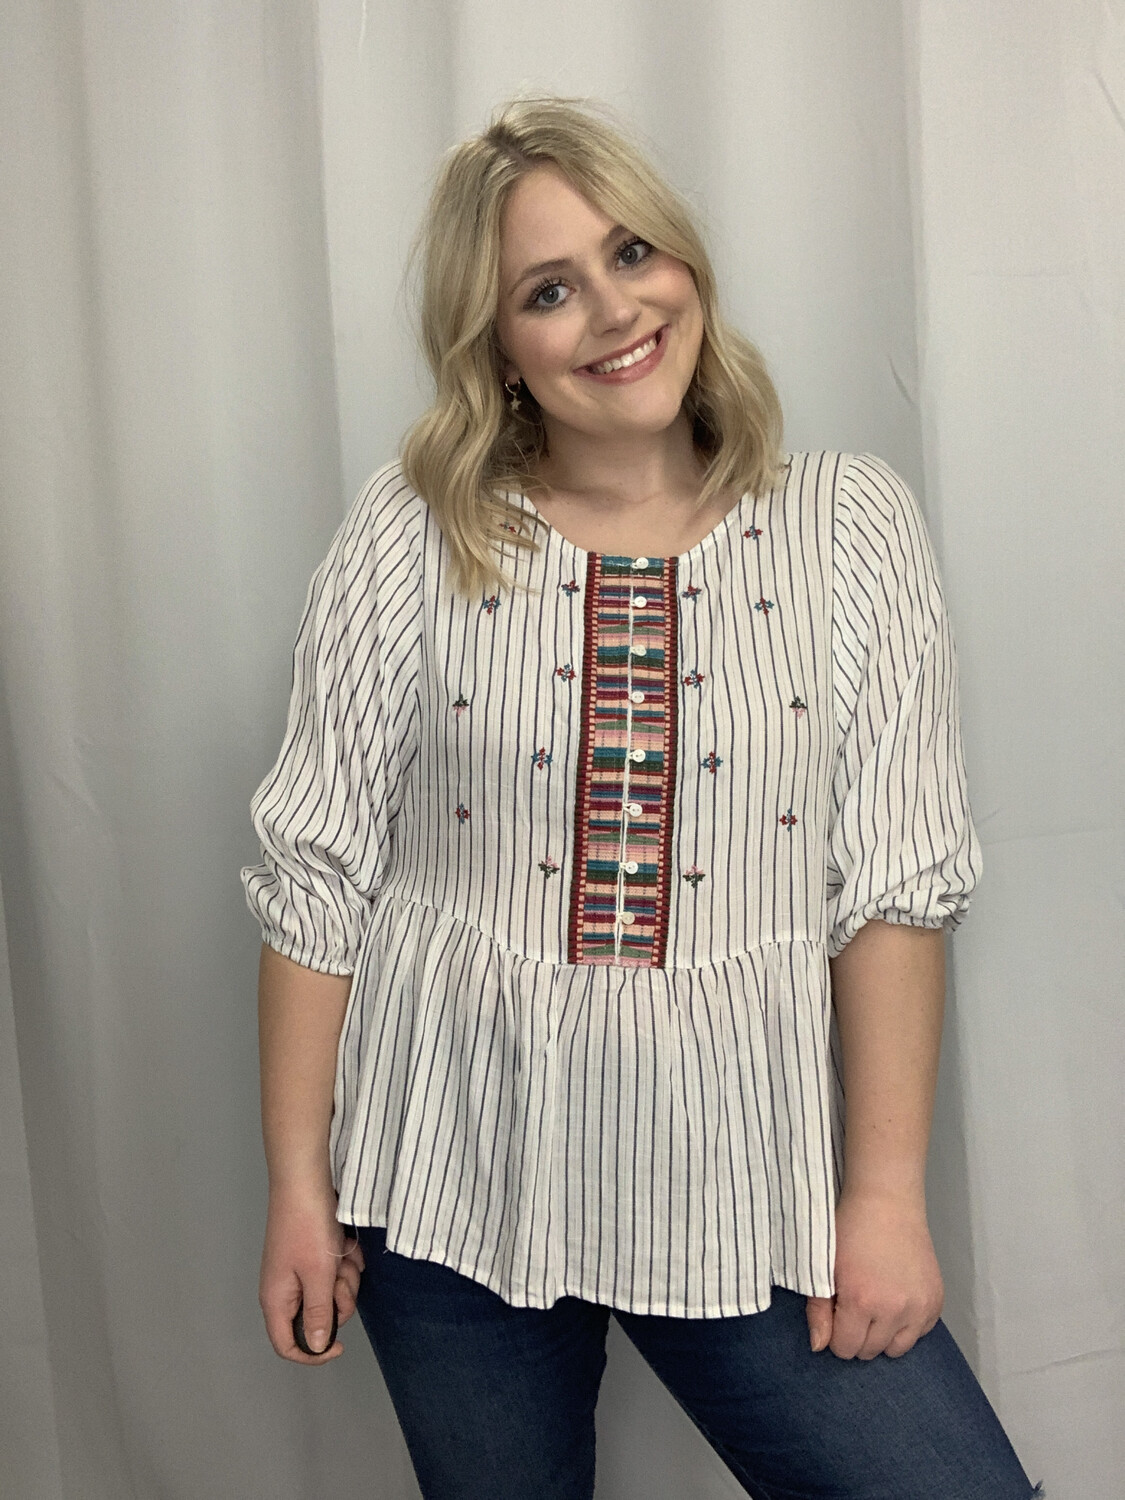 how•very•loved White & Blue Striped Top with Embroidery  - L